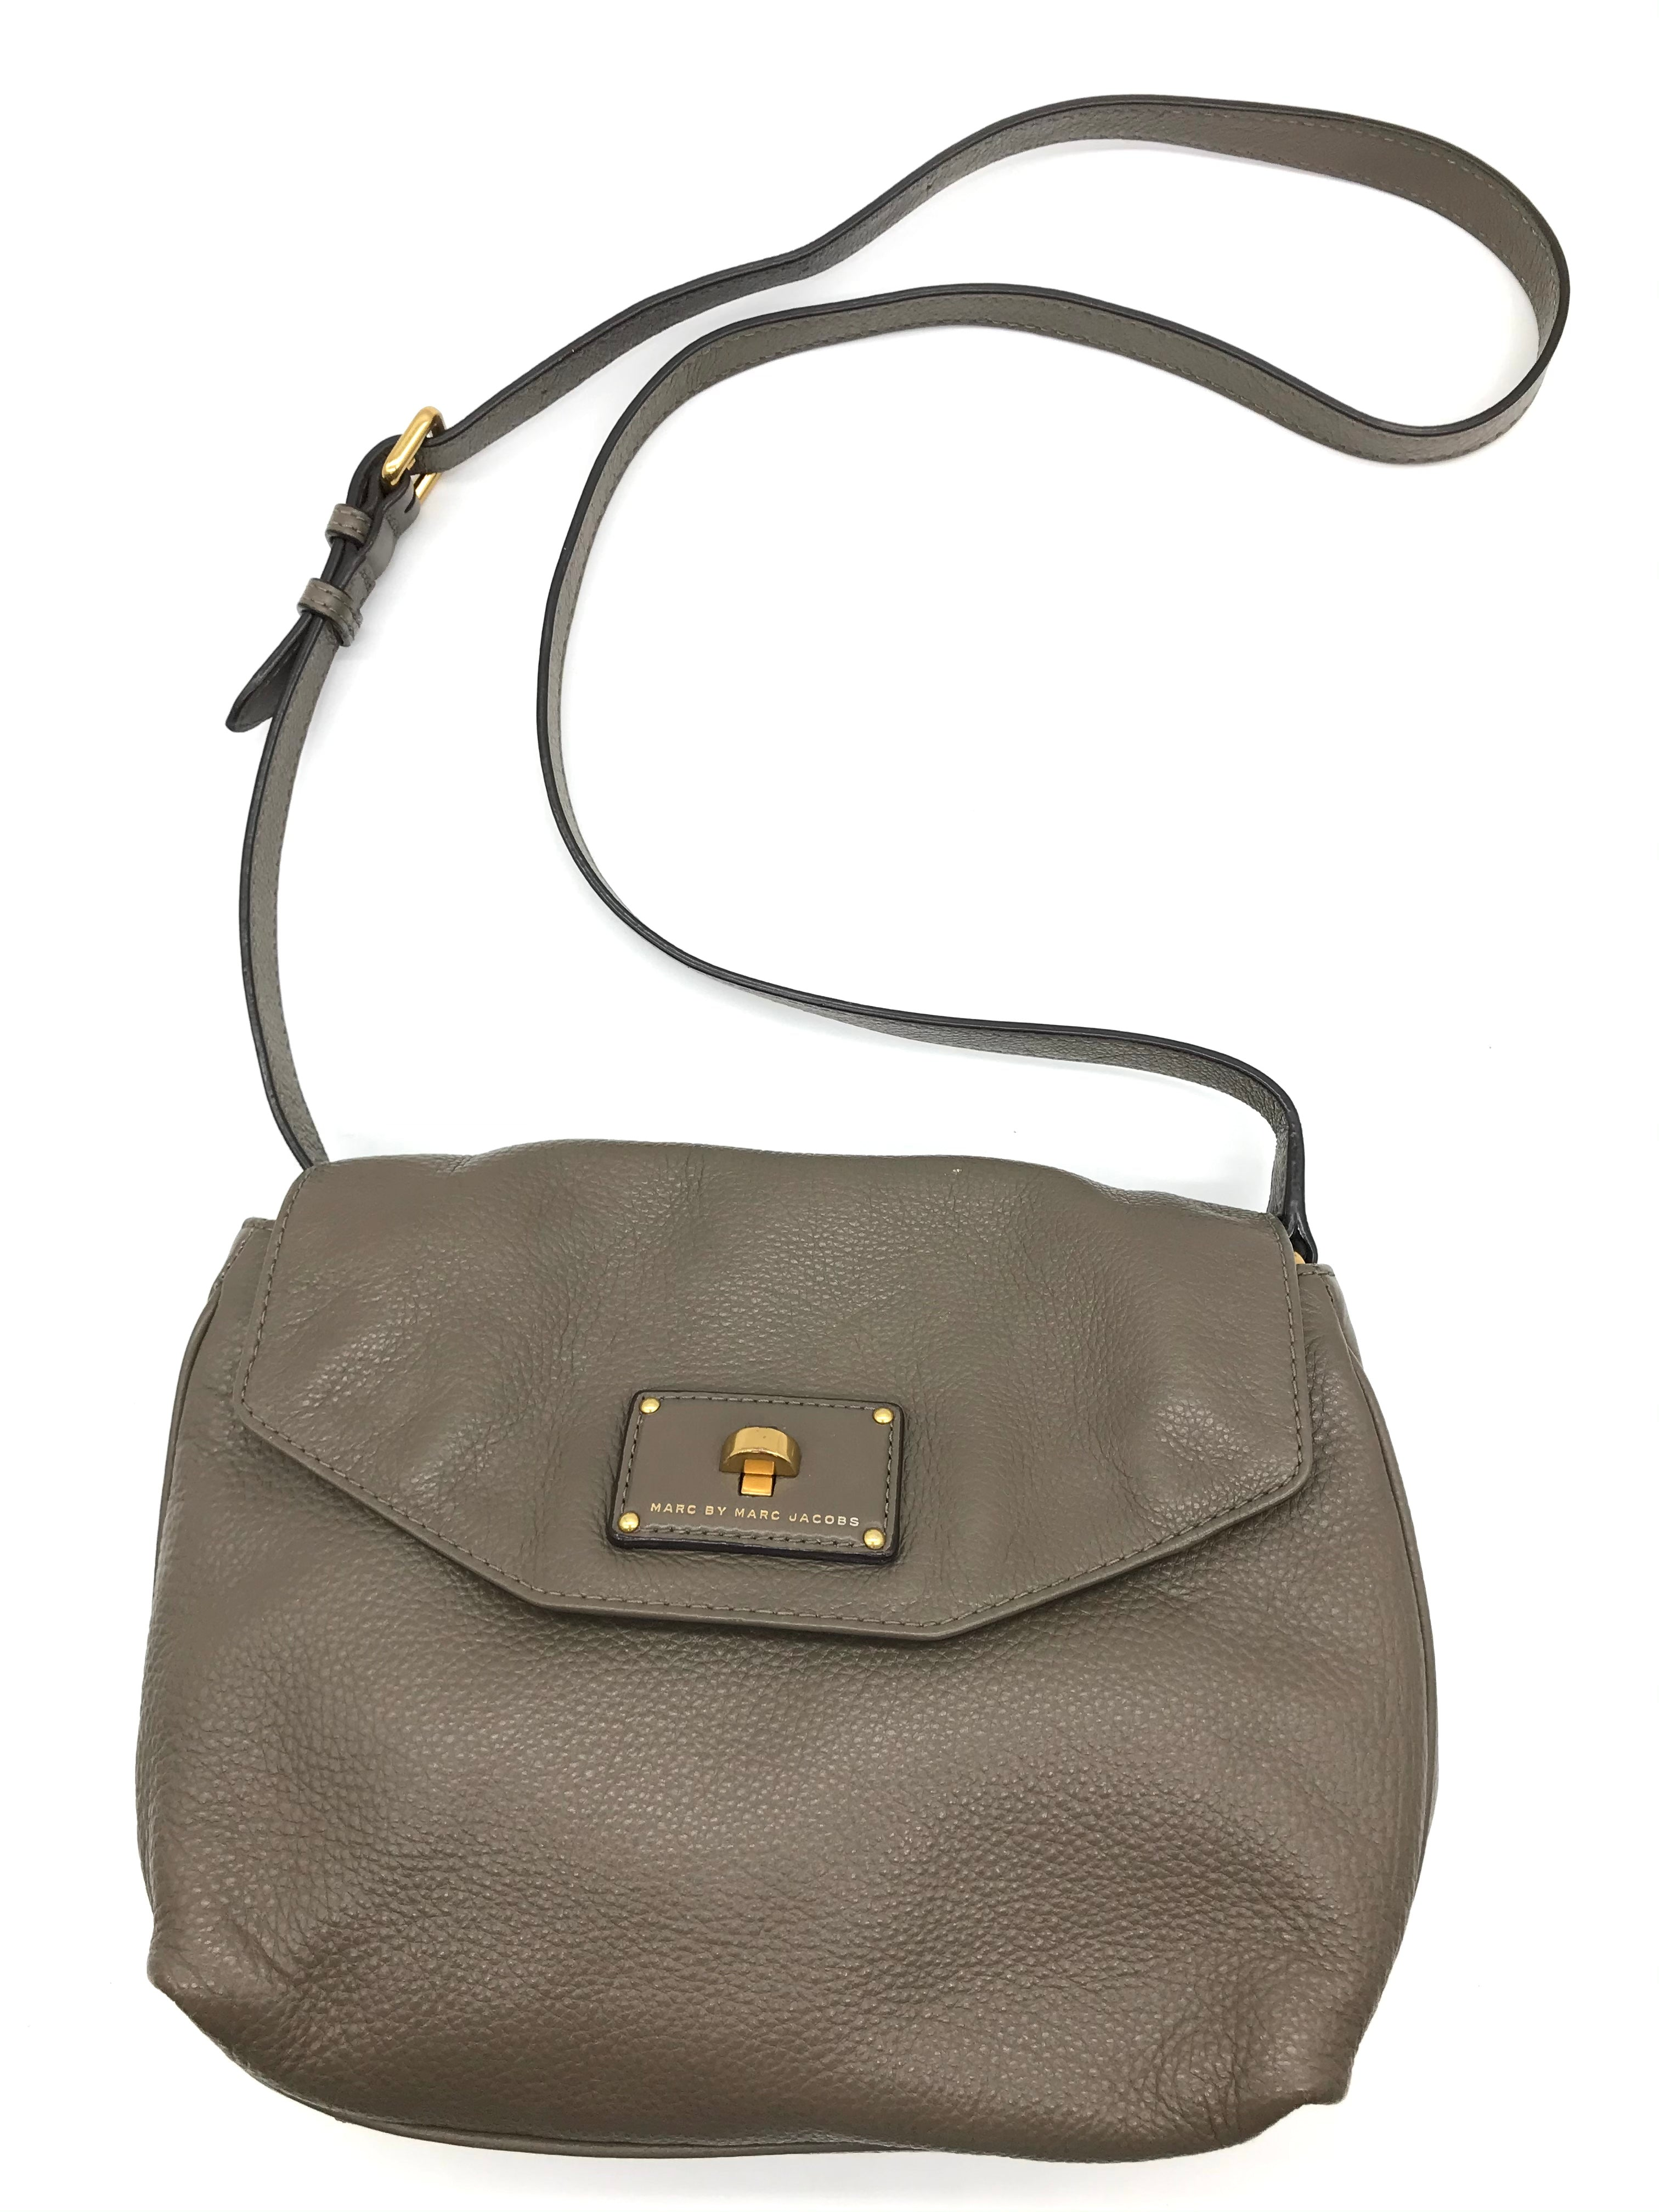 "Primary Photo - BRAND: MARC BY MARC JACOBS <BR>STYLE: HANDBAG DESIGNER <BR>COLOR: TAUPE <BR>SIZE: SMALL 8.5""H X 10""L X 2.2""W<BR>STRAP DROP: 22.5""<BR>SKU: 262-26241-43499<BR>IN GOOD SHAPE AND CONDITION"